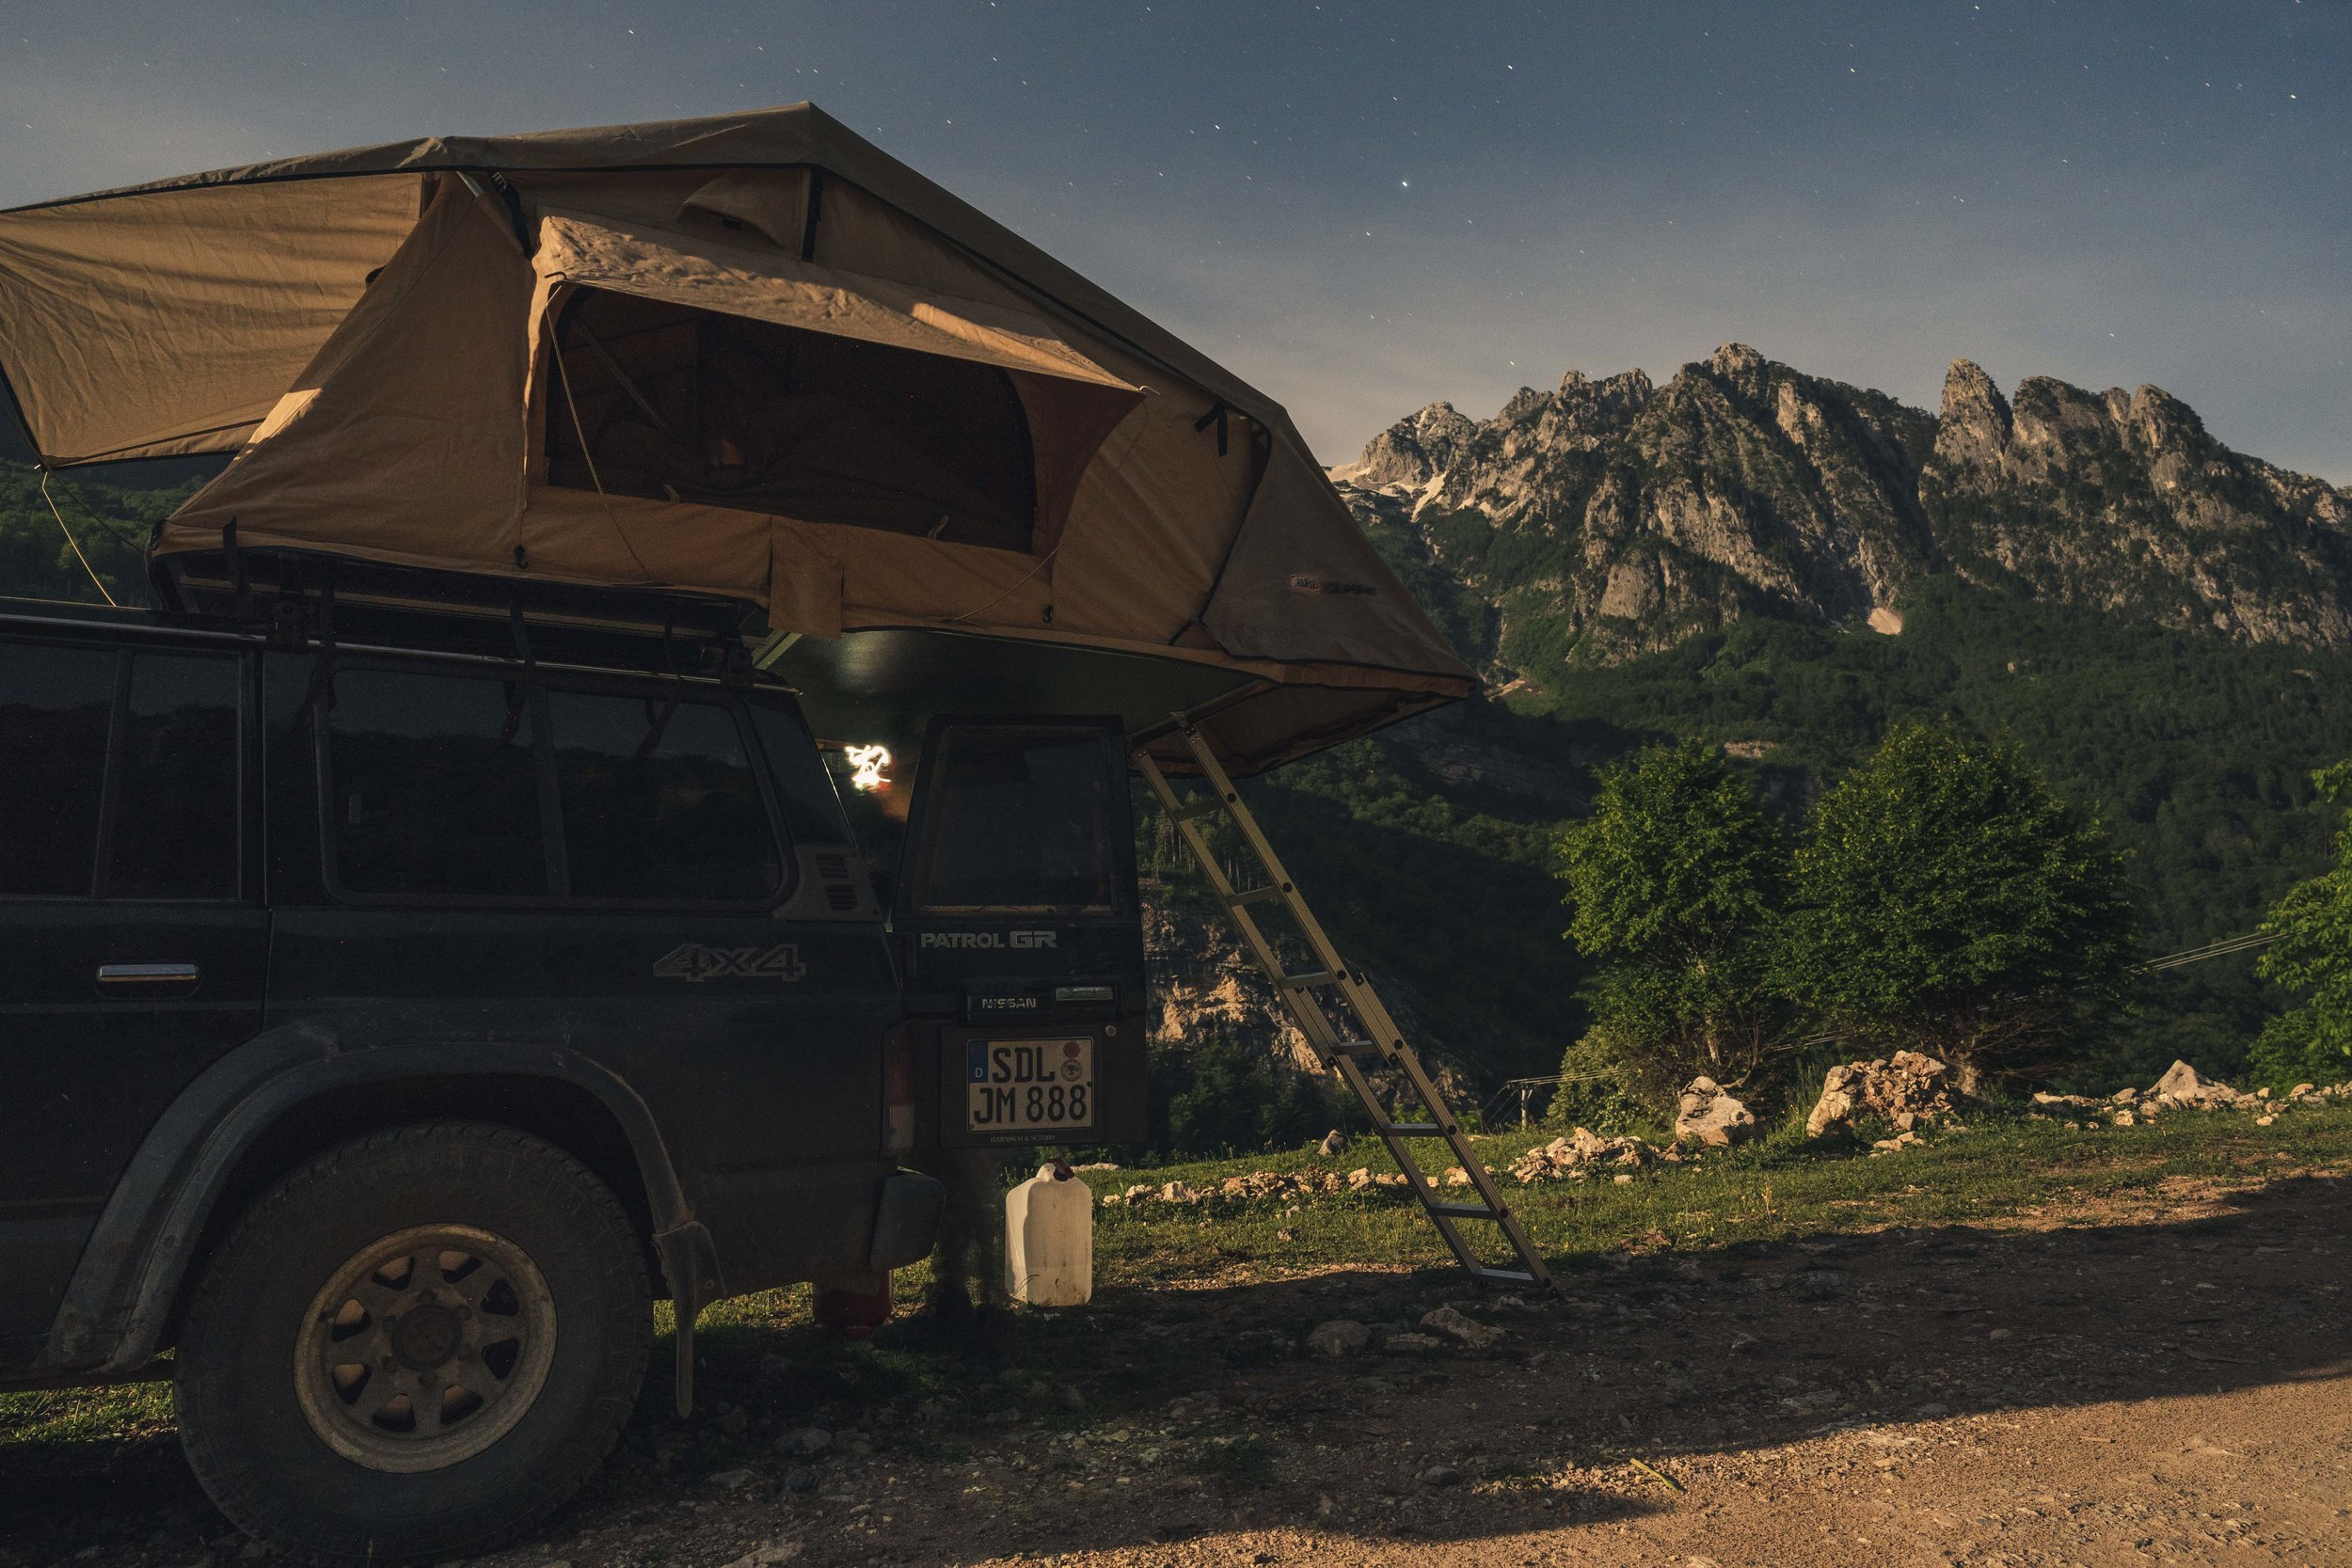 Our destination for tomorrow in the back, stars out, beauty in Valbona Valley